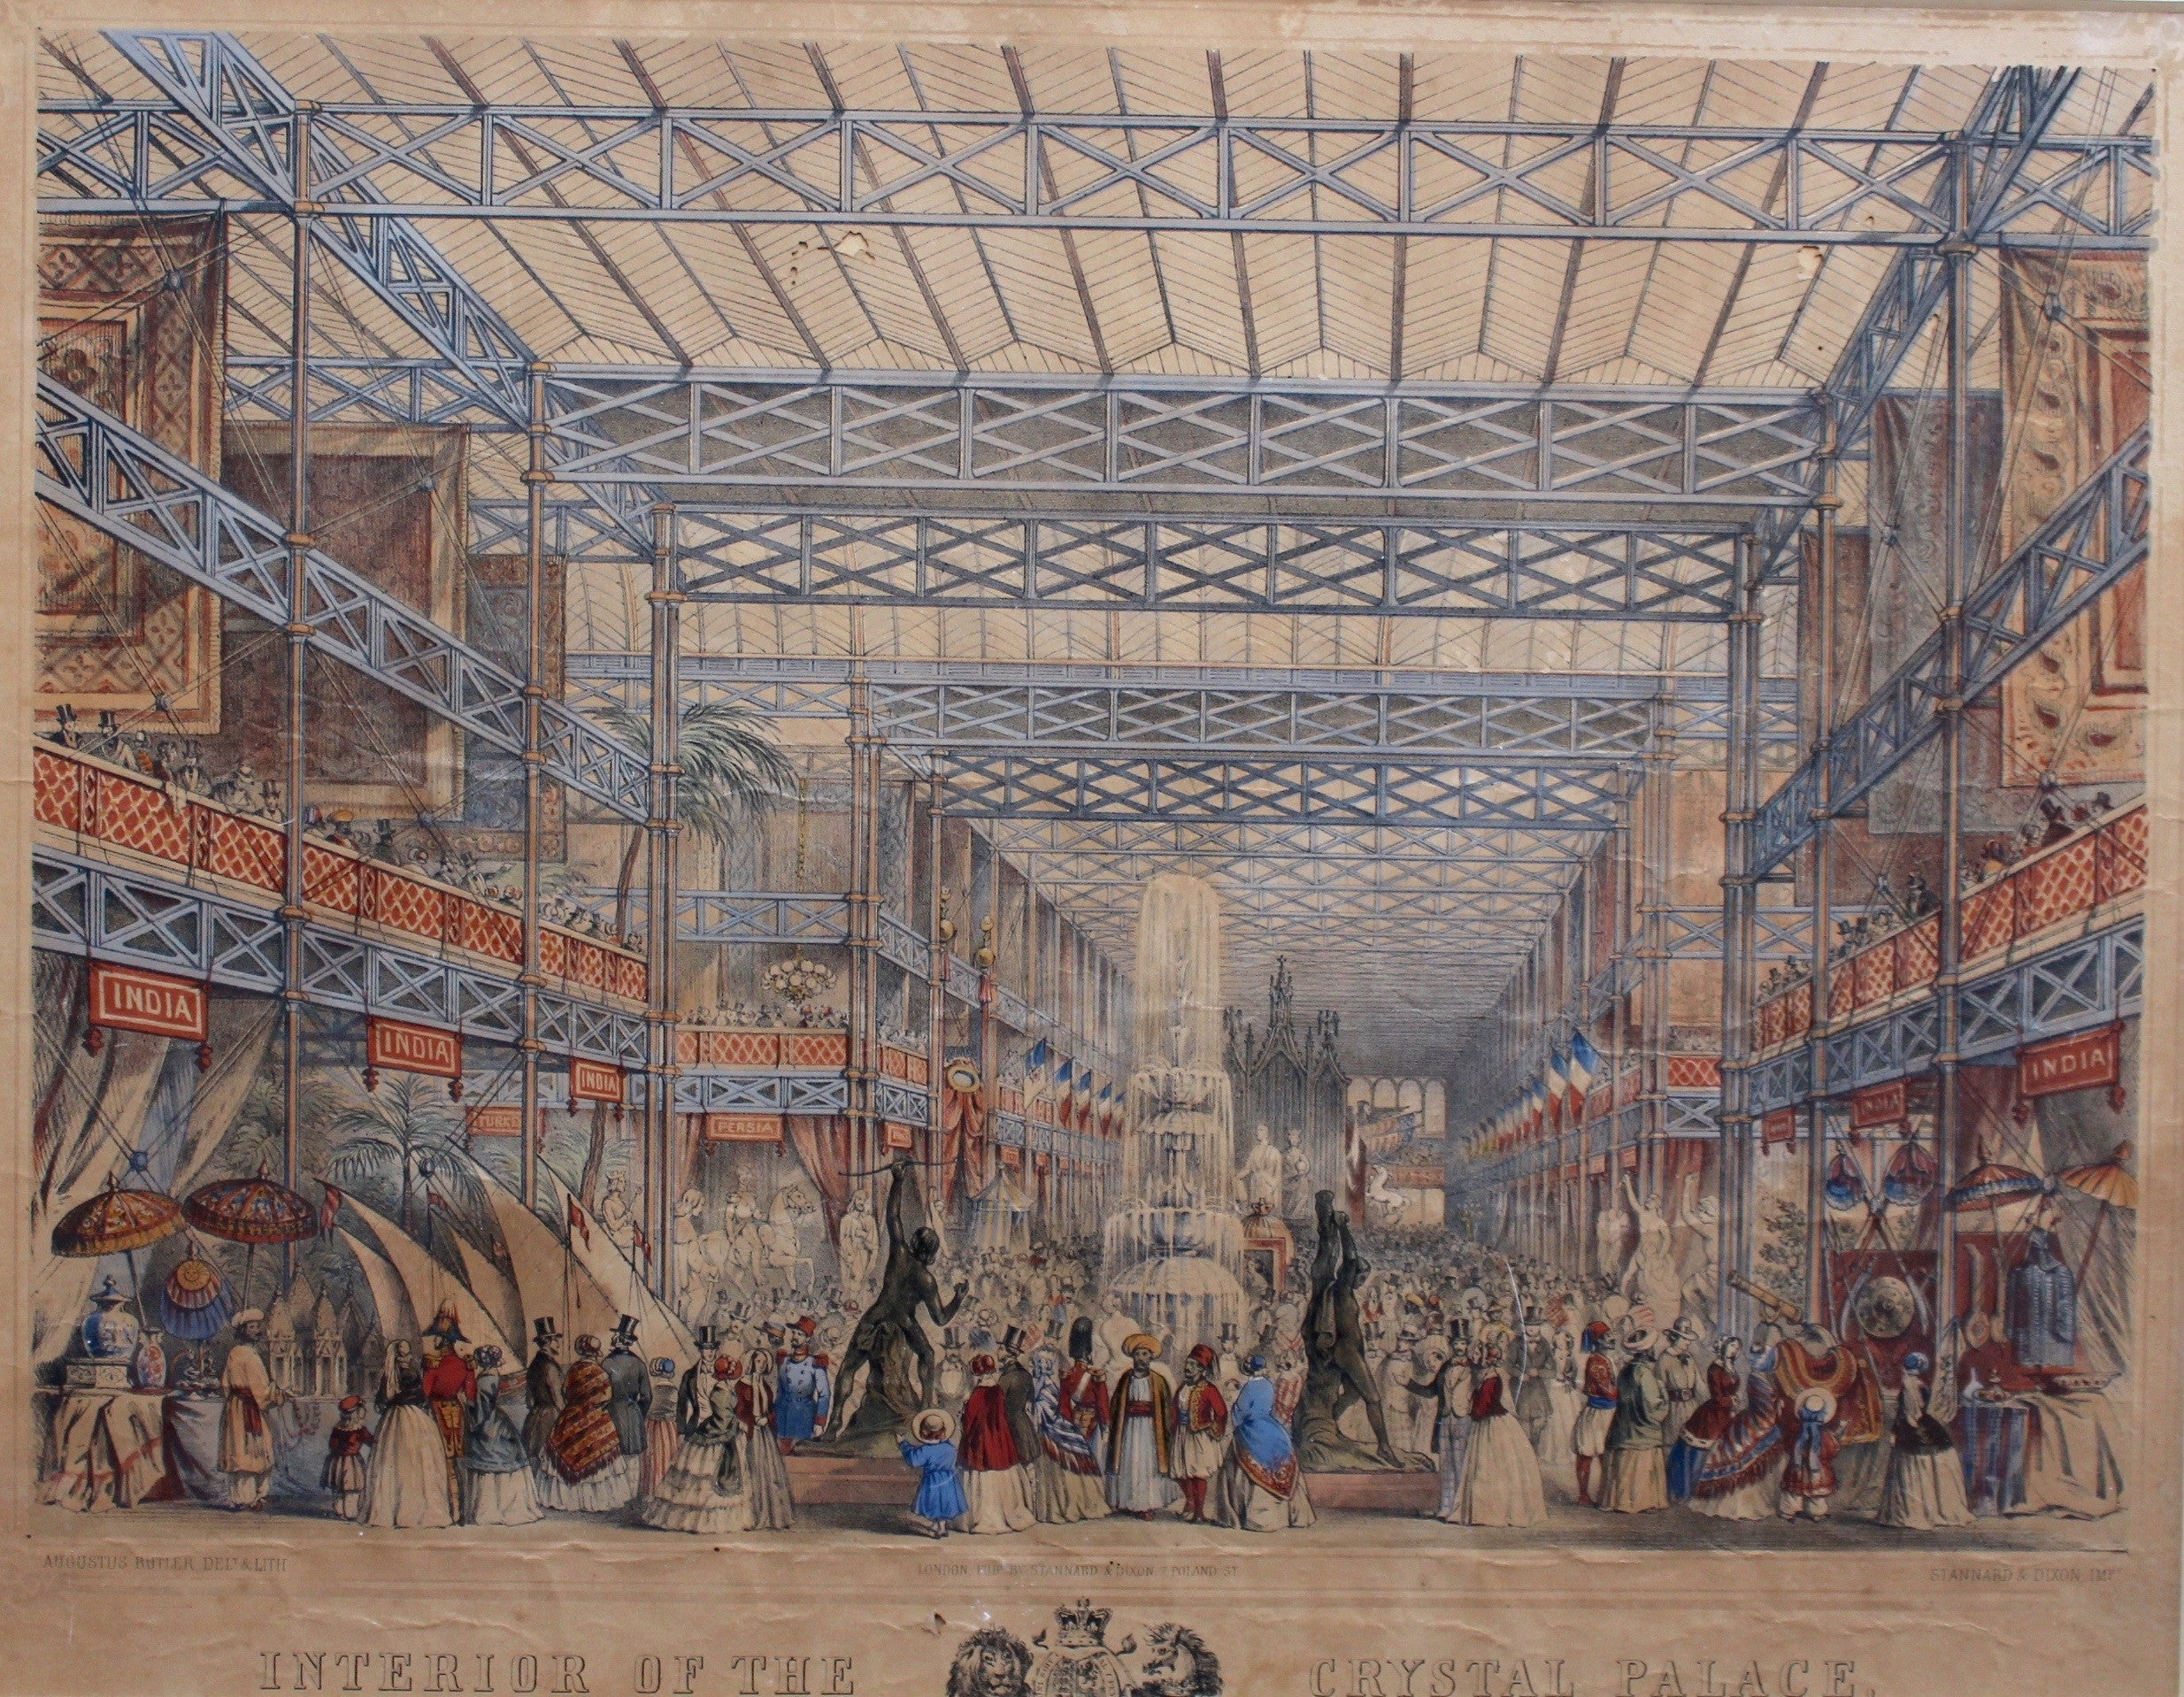 'Interior of The Crystal Palace' Original Hand-Coloured Lithograph by Augustus Butler (1855)